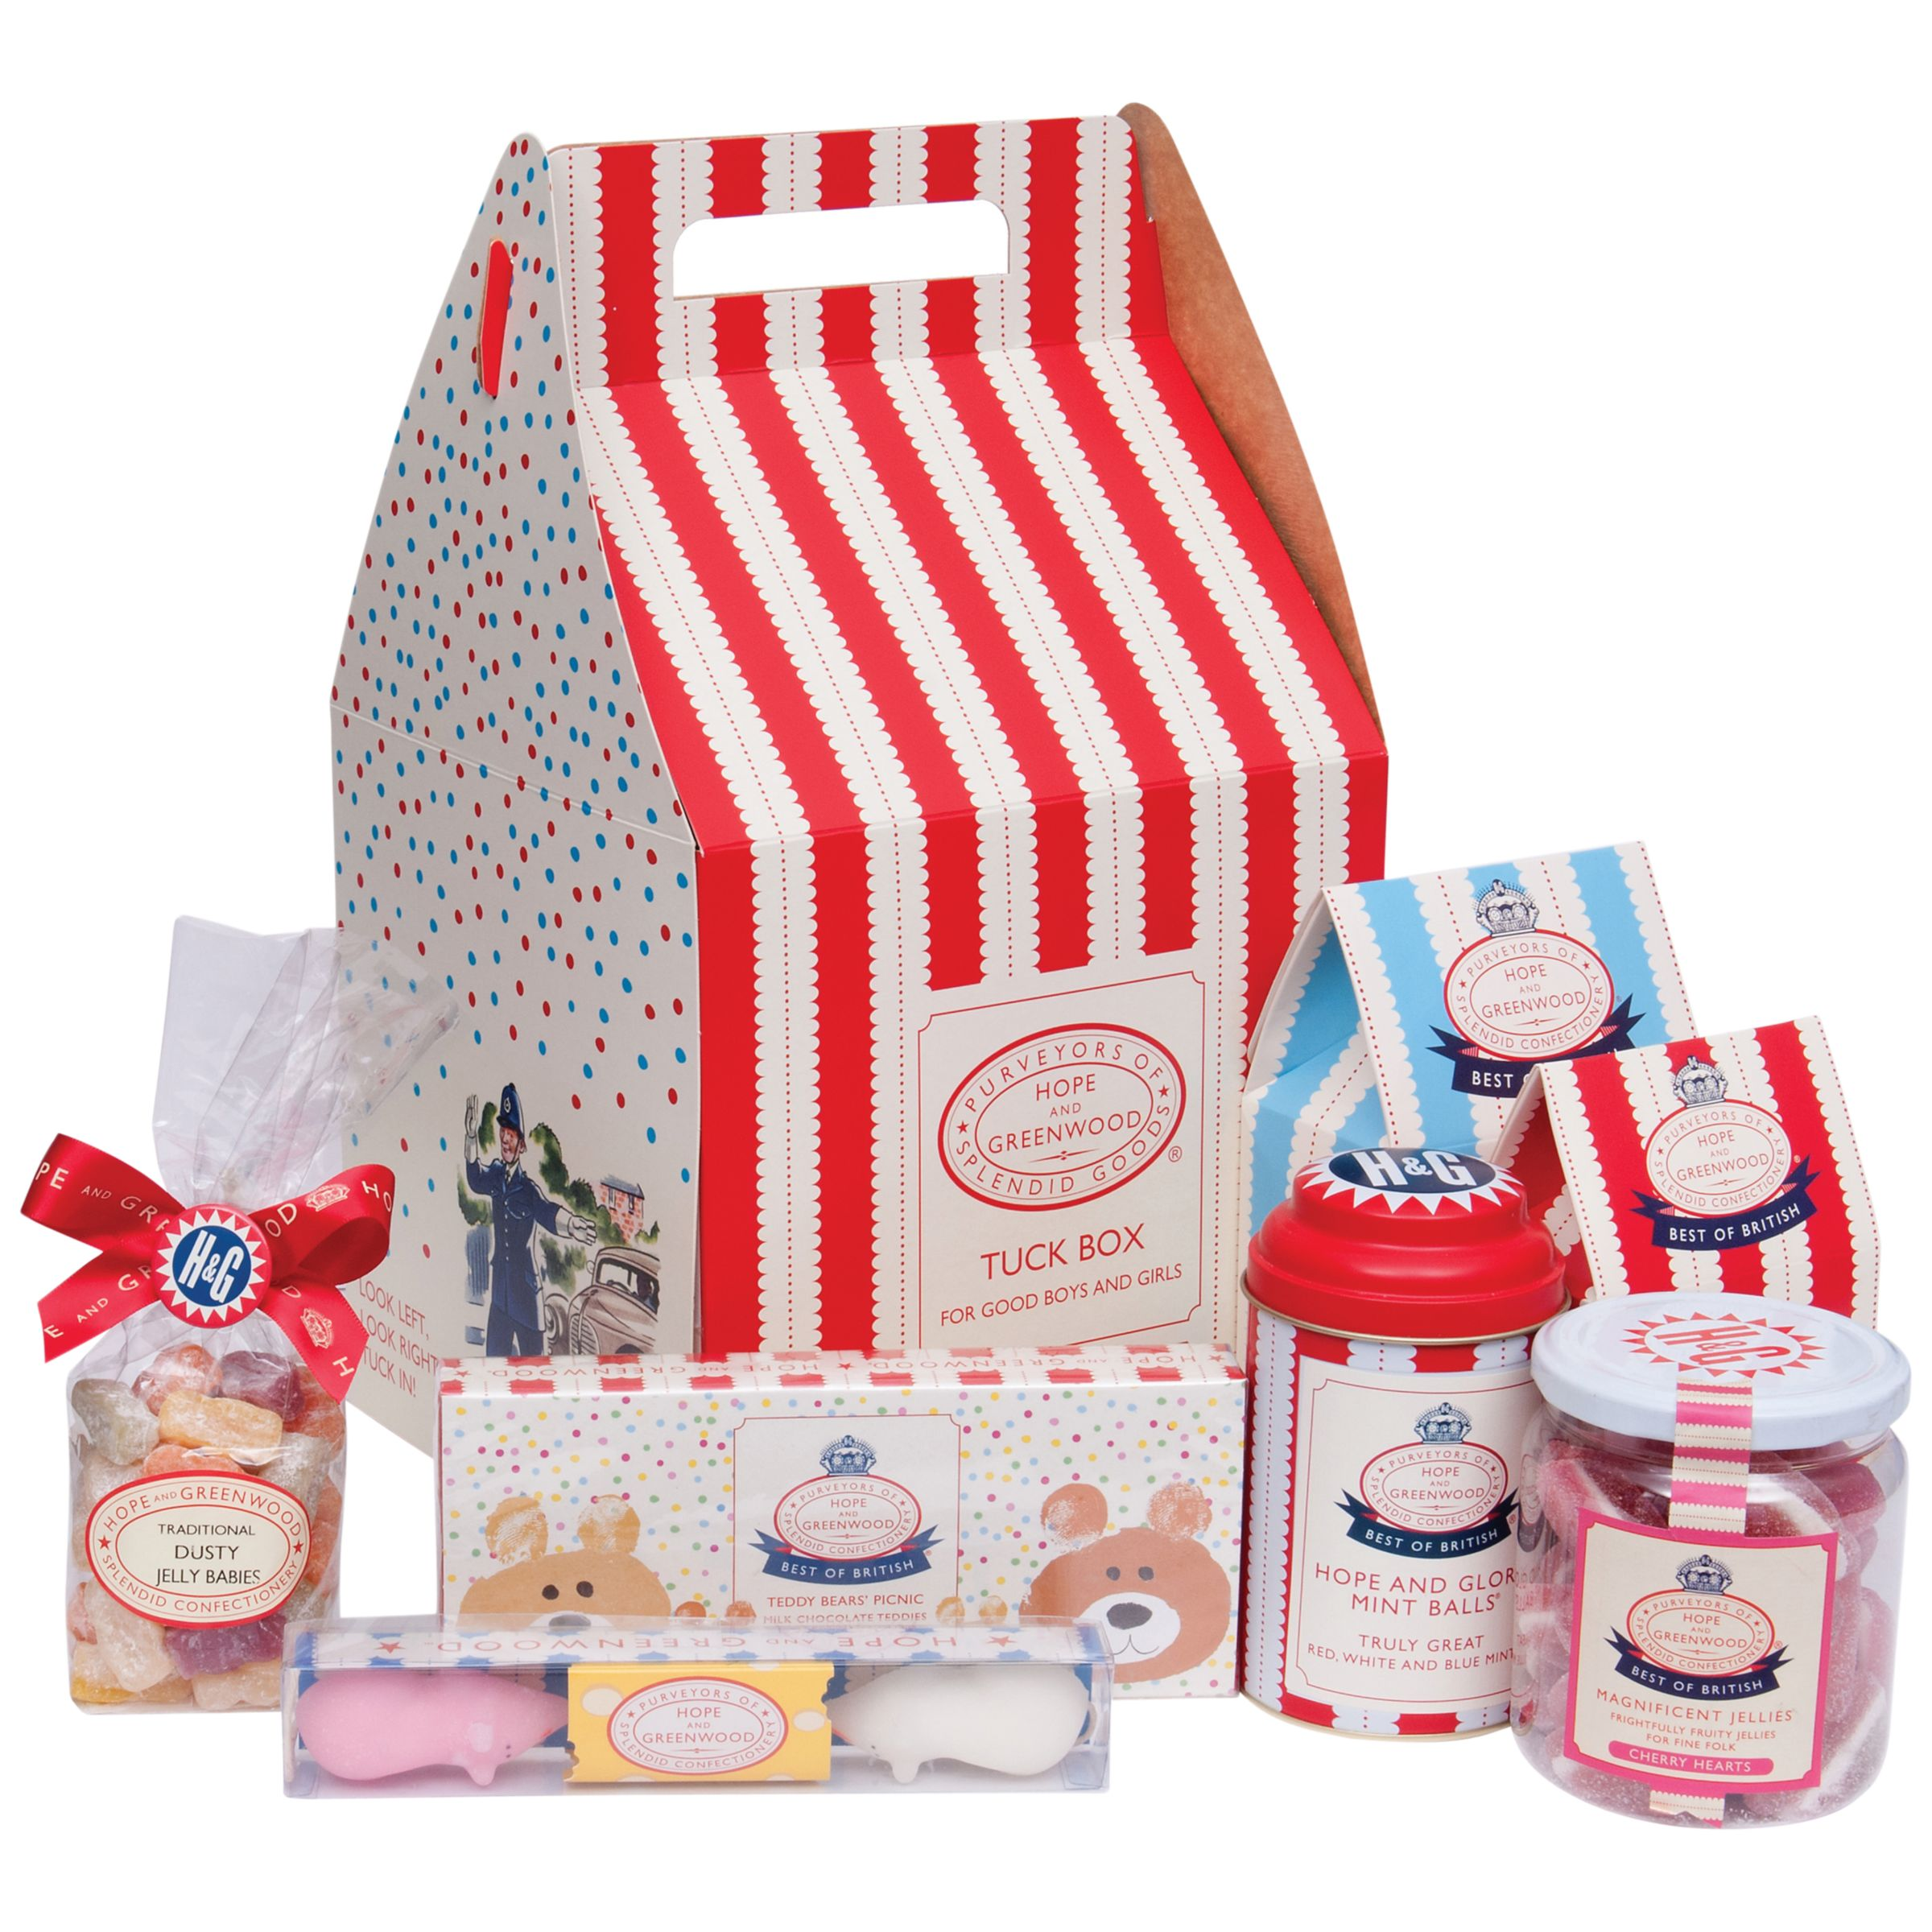 Hope & Greenwood Tuck Box Sweet Hamper